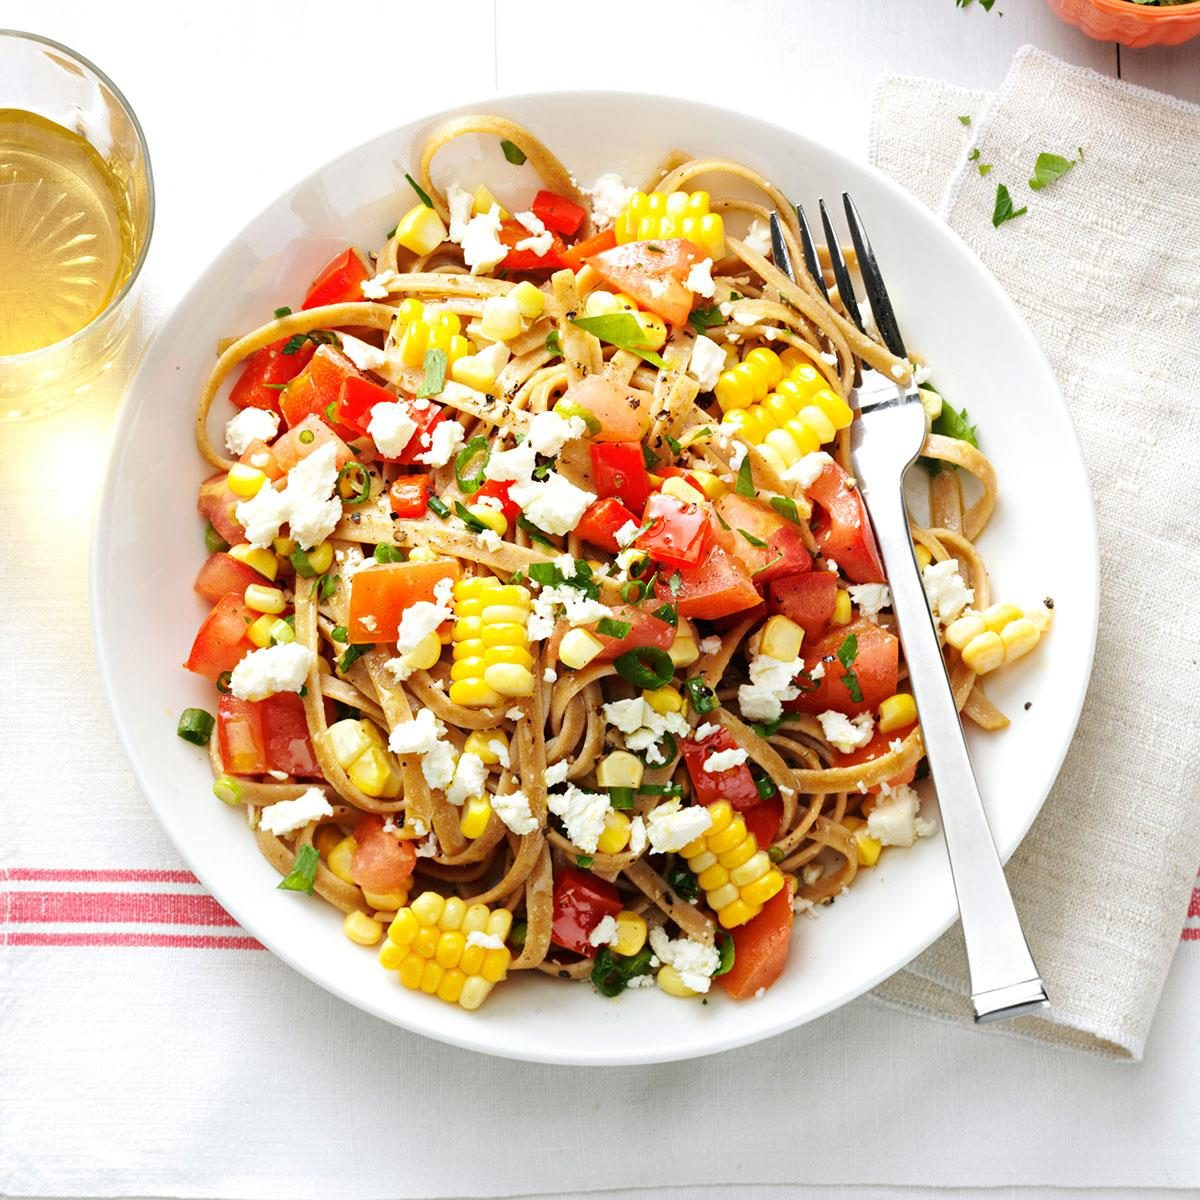 Healthy Dinner Recipes: Whole Wheat Fettuccini With Fresh Corn, Tomatoes, Spring